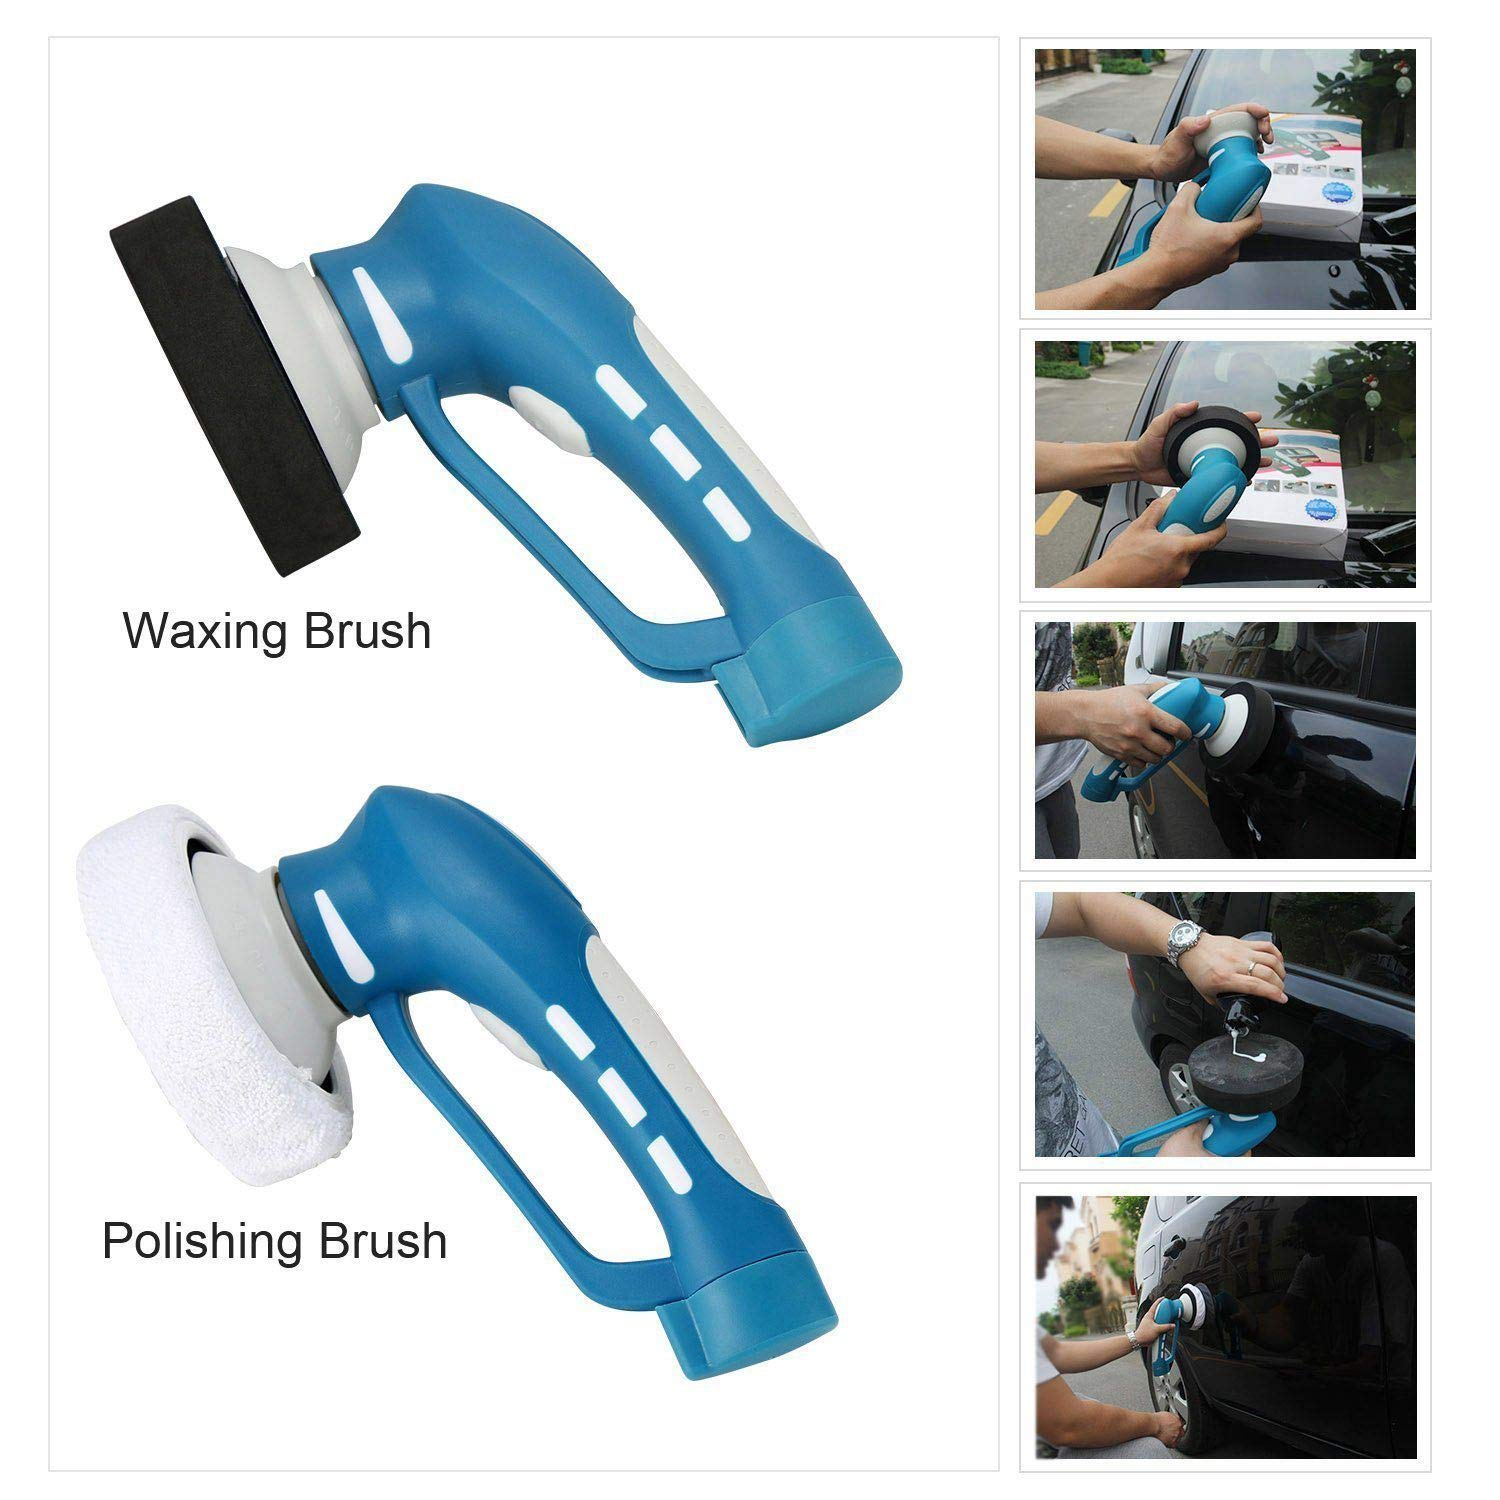 DSstyles Vehicle Car Polishing Mini Wireless Electric Vehicle Car Polisher Machine Clean Waterproof Tool by DSstyles (Image #1)